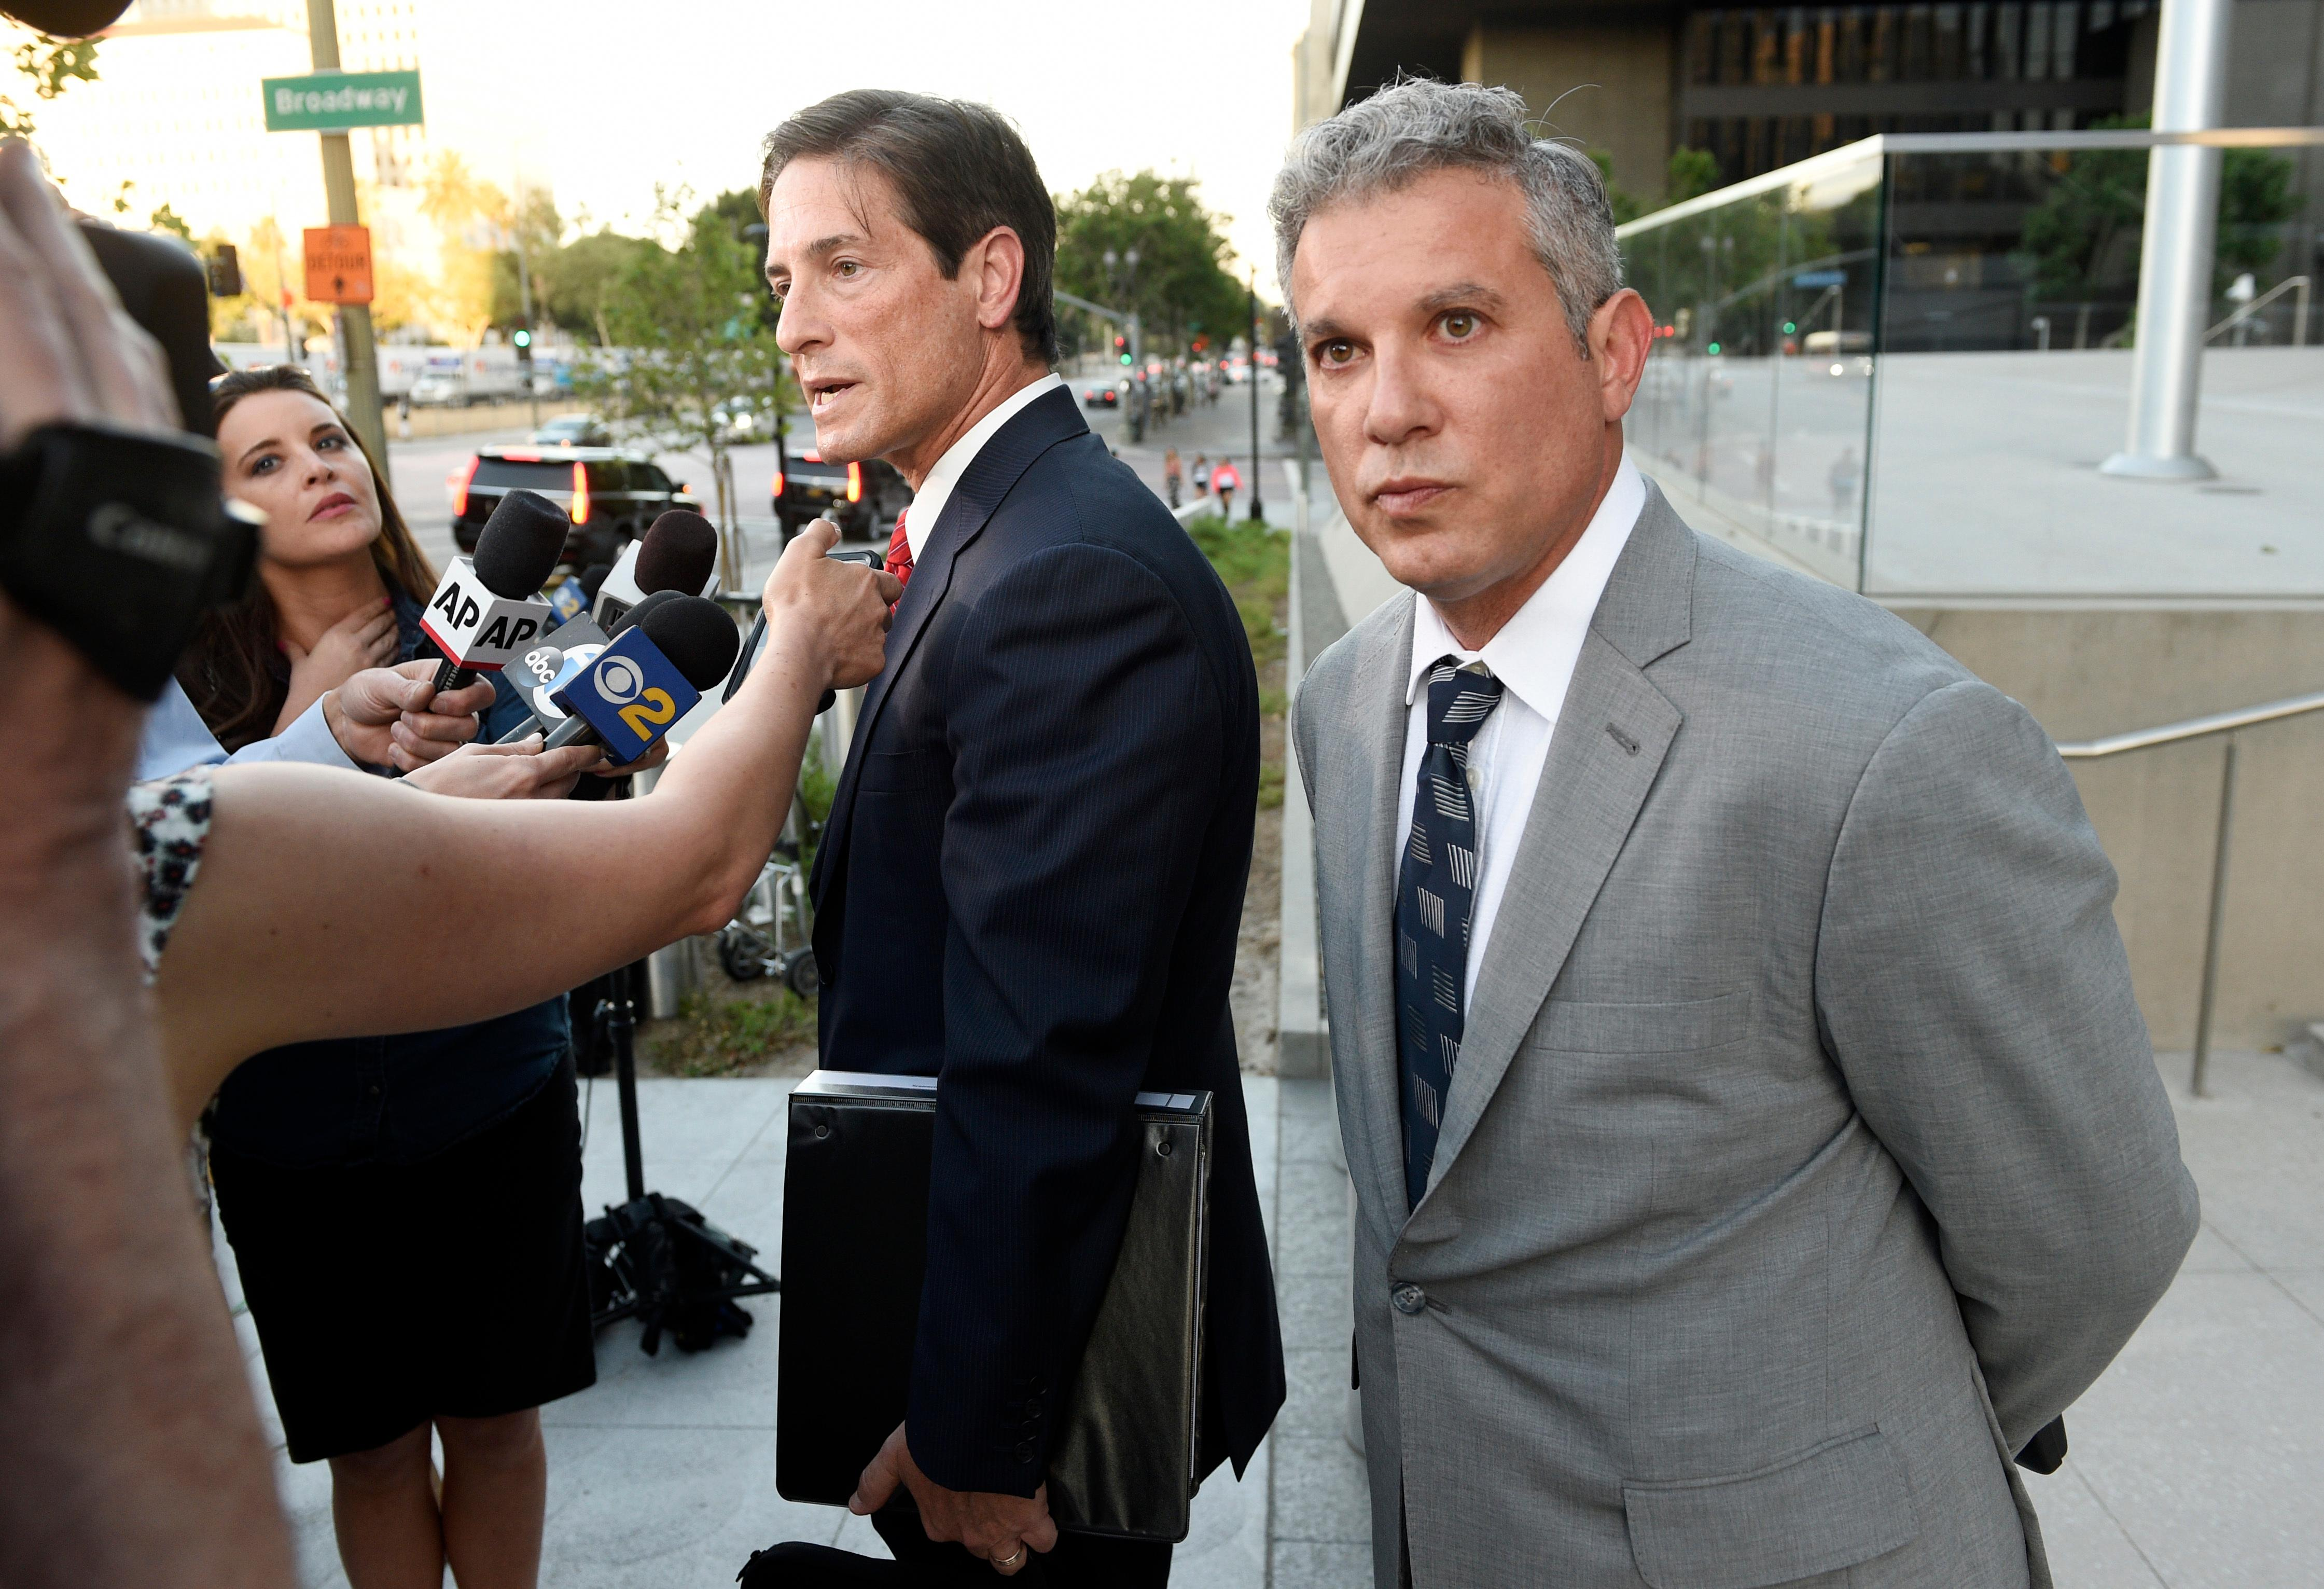 Jonathan Todd Schwartz, right, former business manager for singer Alanis Morissette, looks on as his attorney Nathan Hoffman addresses reporters outside U.S. federal court following sentencing in his embezzlement case, Wednesday, May 3, 2017, in Los Angeles. Schwartz was sentenced to six years in federal prison for stealing more than $7 million from the singer and other clients, and was ordered to pay $8.6 million in restitution. (AP Photo/Chris Pizzello)